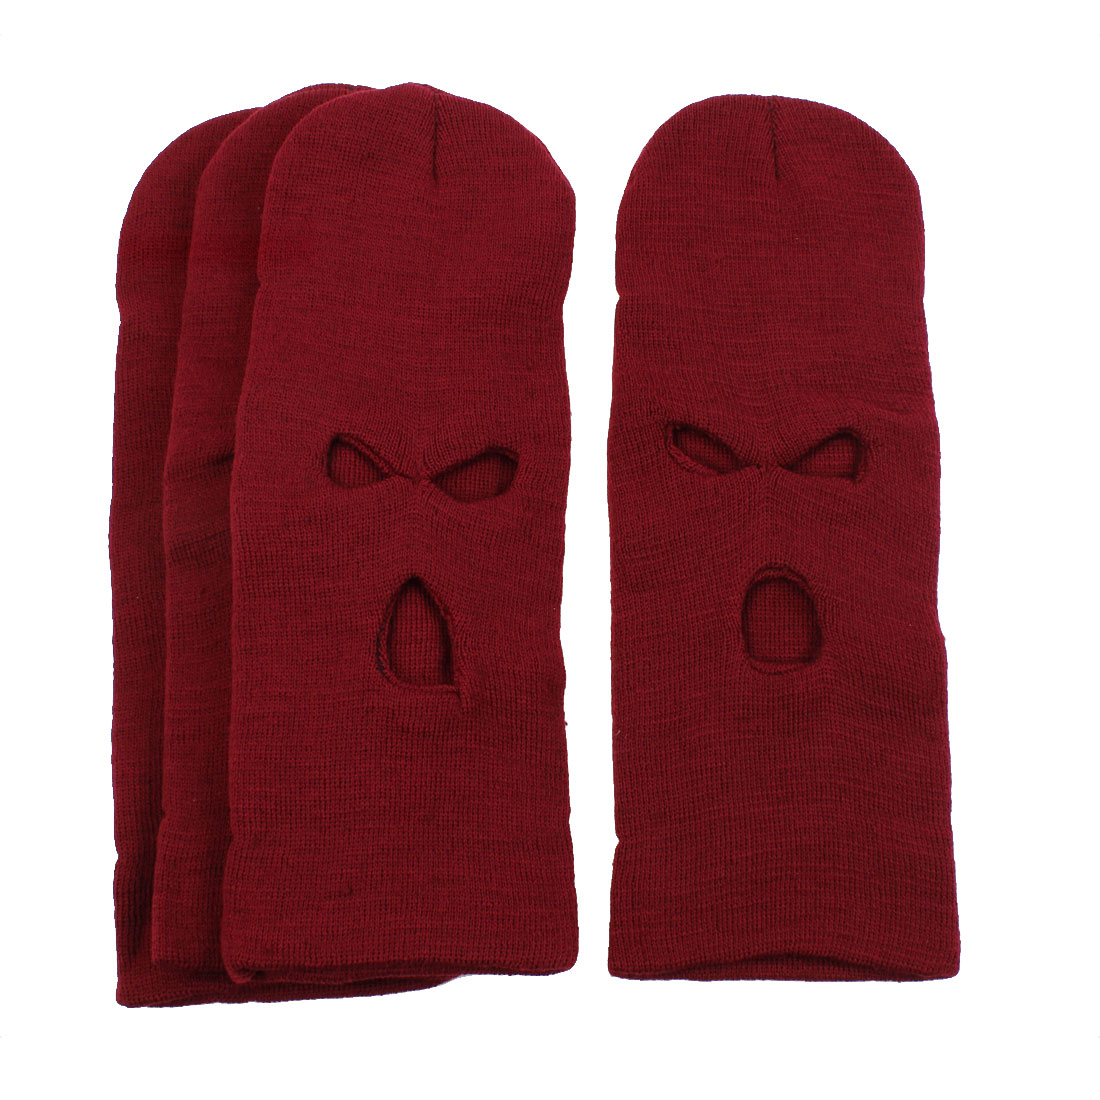 Face Neck Cover Winter Ski Motorcycle Warmer Balaclava Hat Cap Burgundy 4PCS